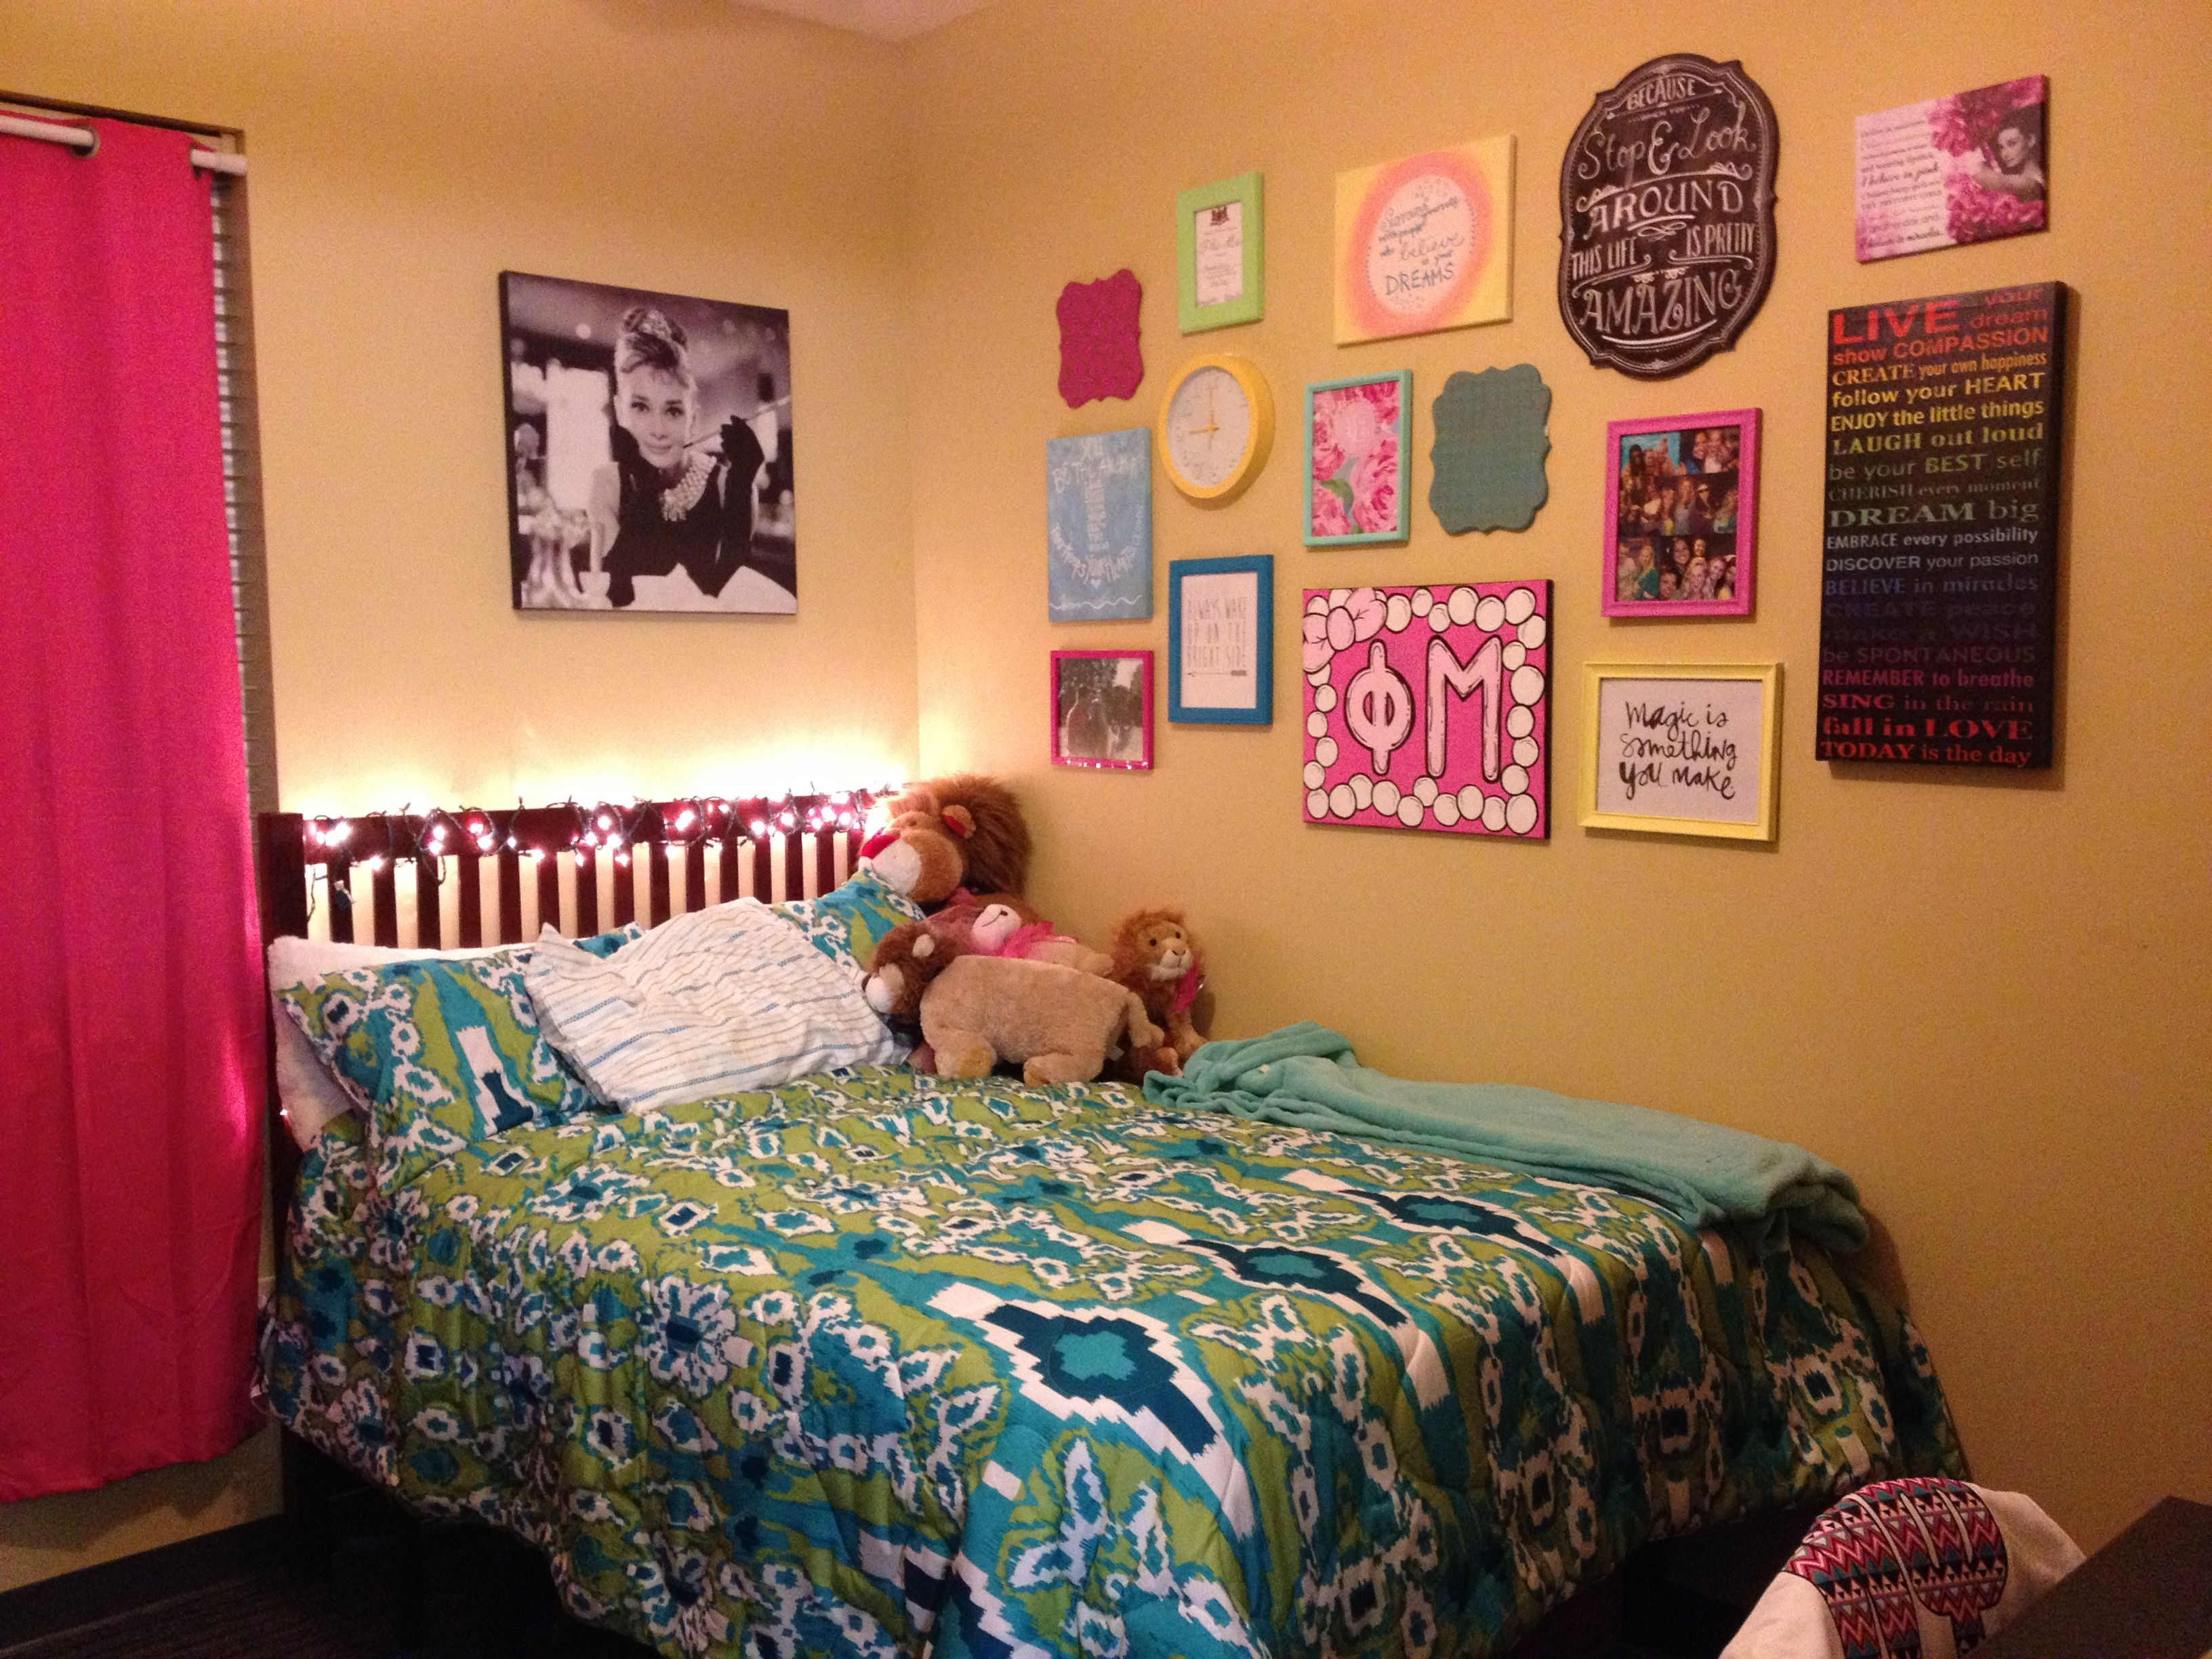 dorm room wall decor college pinterest on wall decorations id=38948